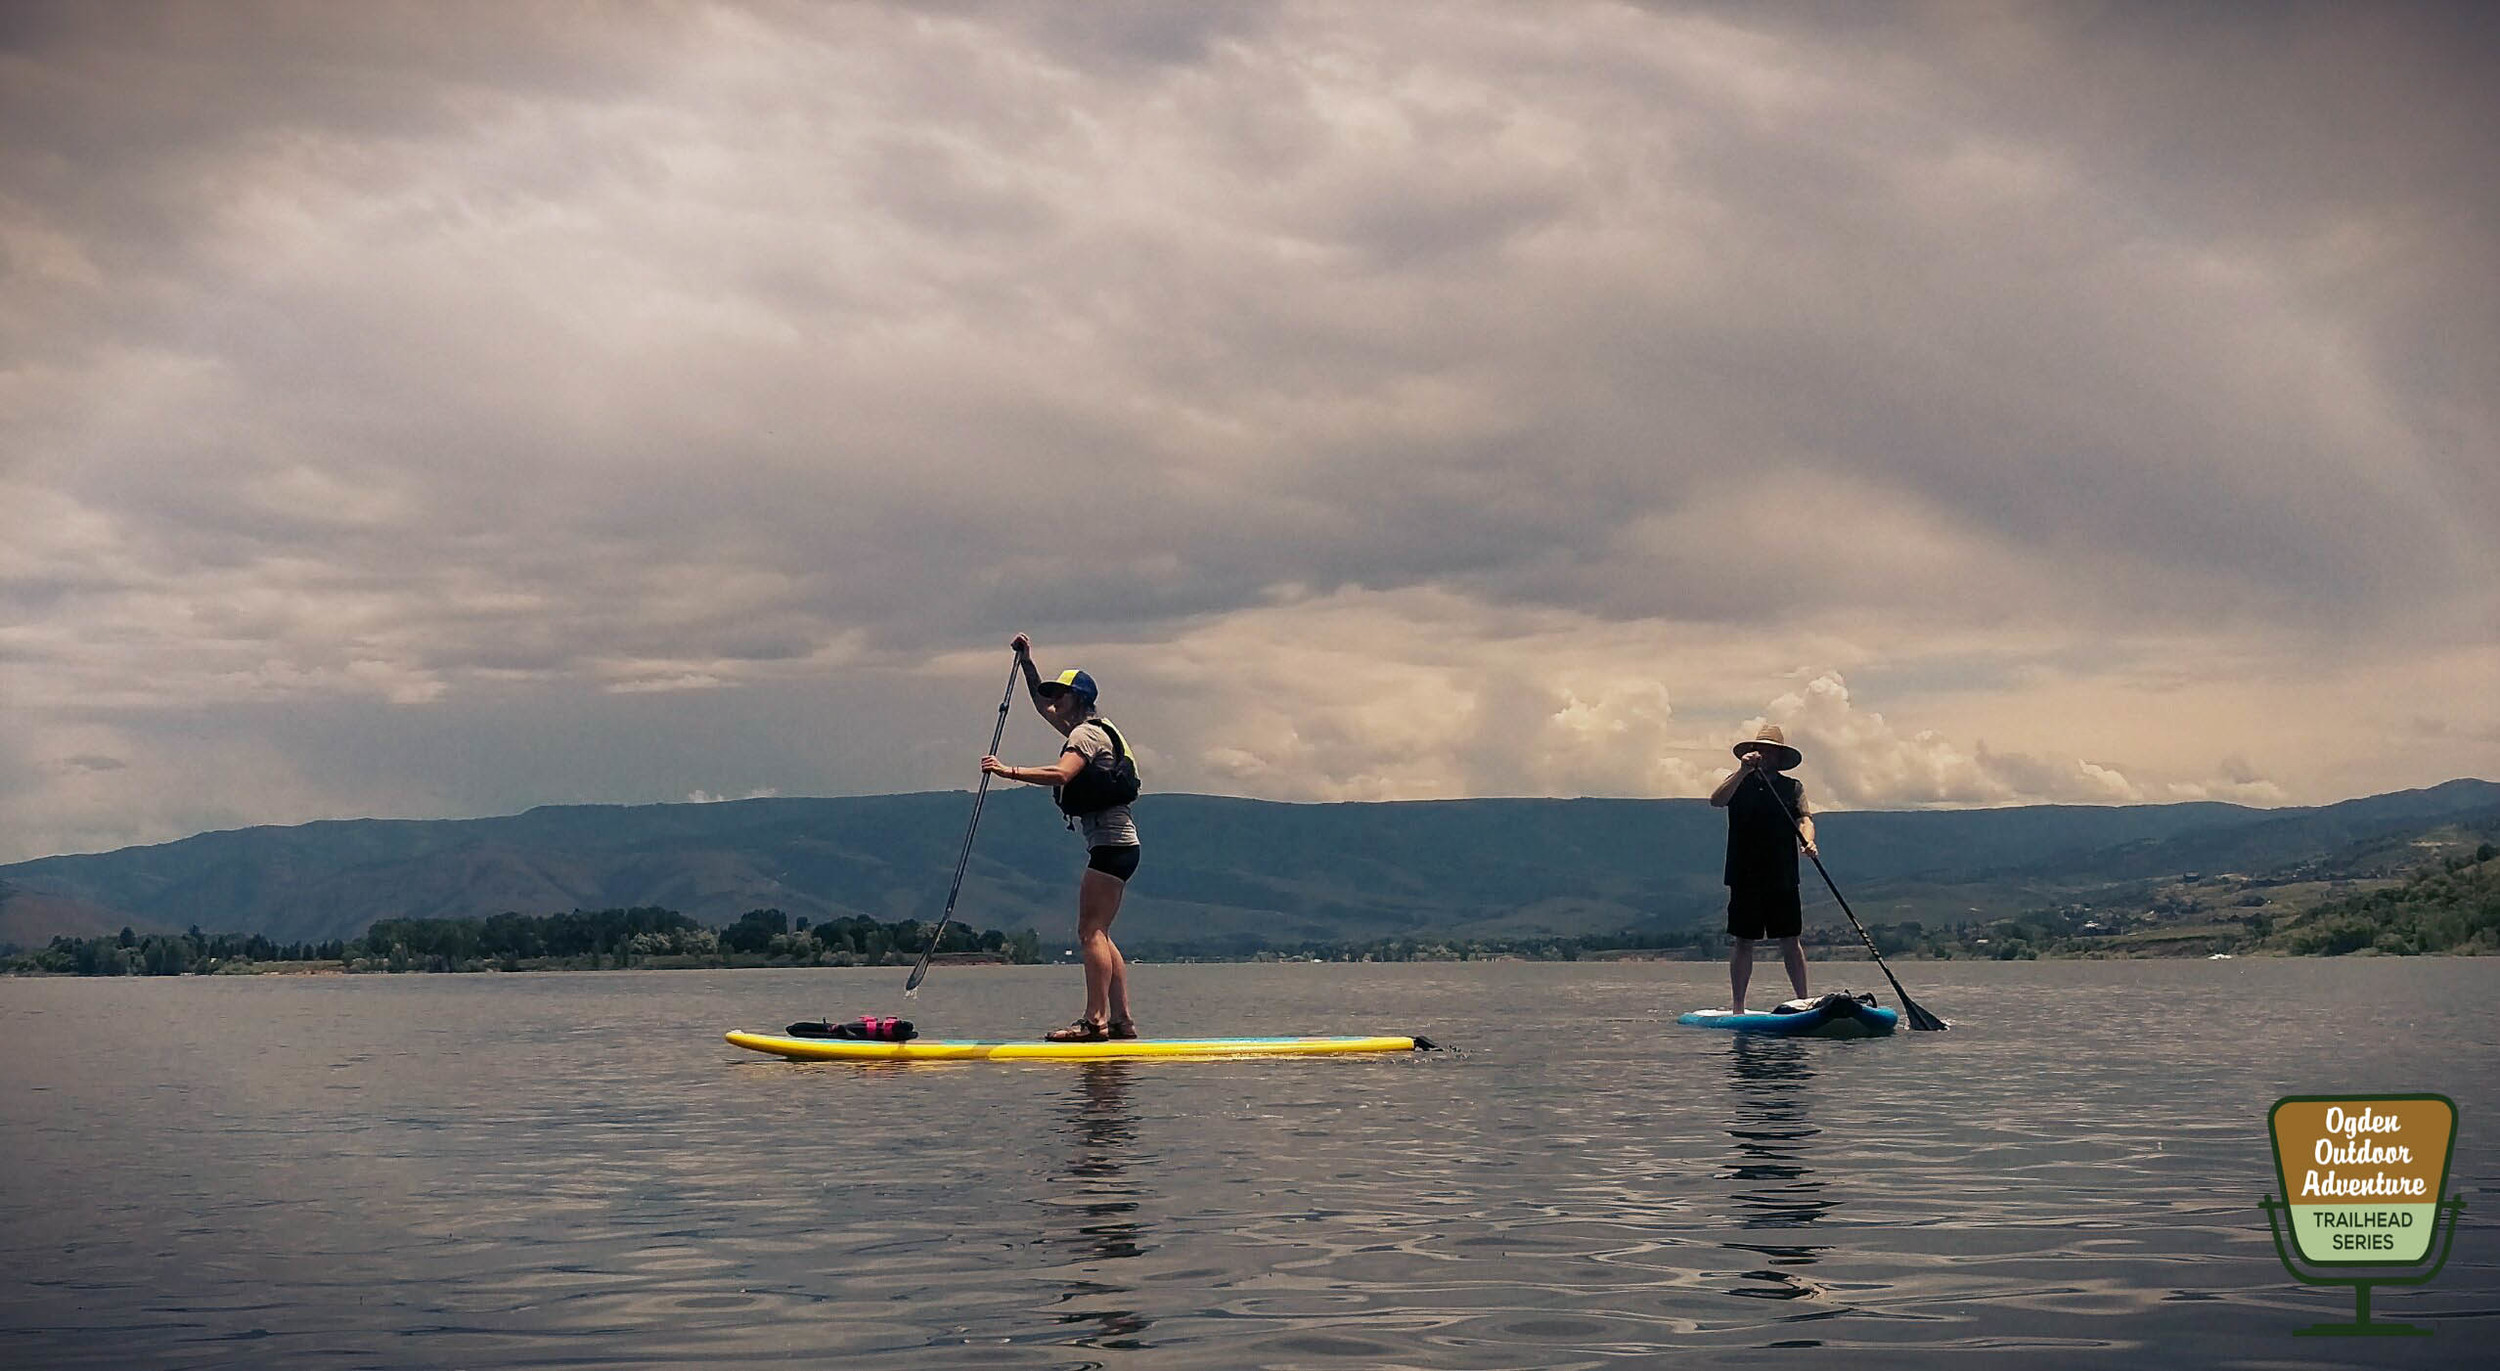 Jacquie and Todd to the Top SUP'ing Pineview